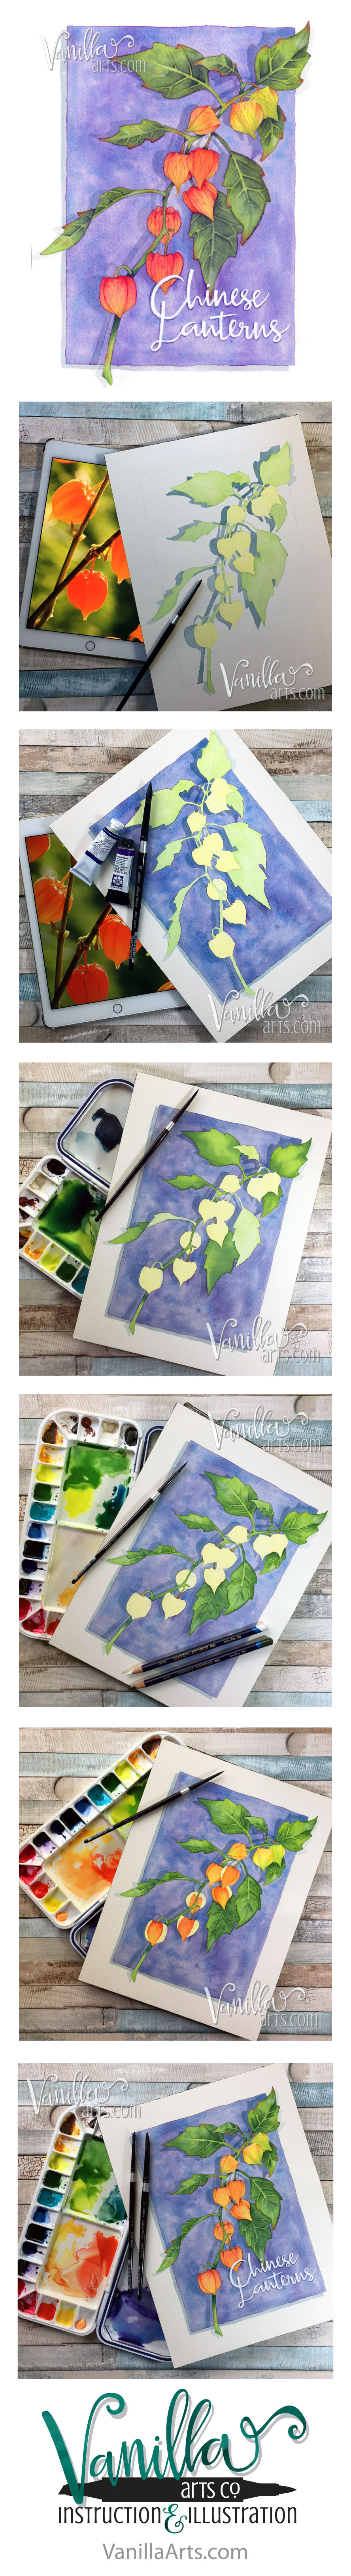 nasturtium- h2oh! teaching copic colorers to apply their skills to watercolor. | VanillaArts.com